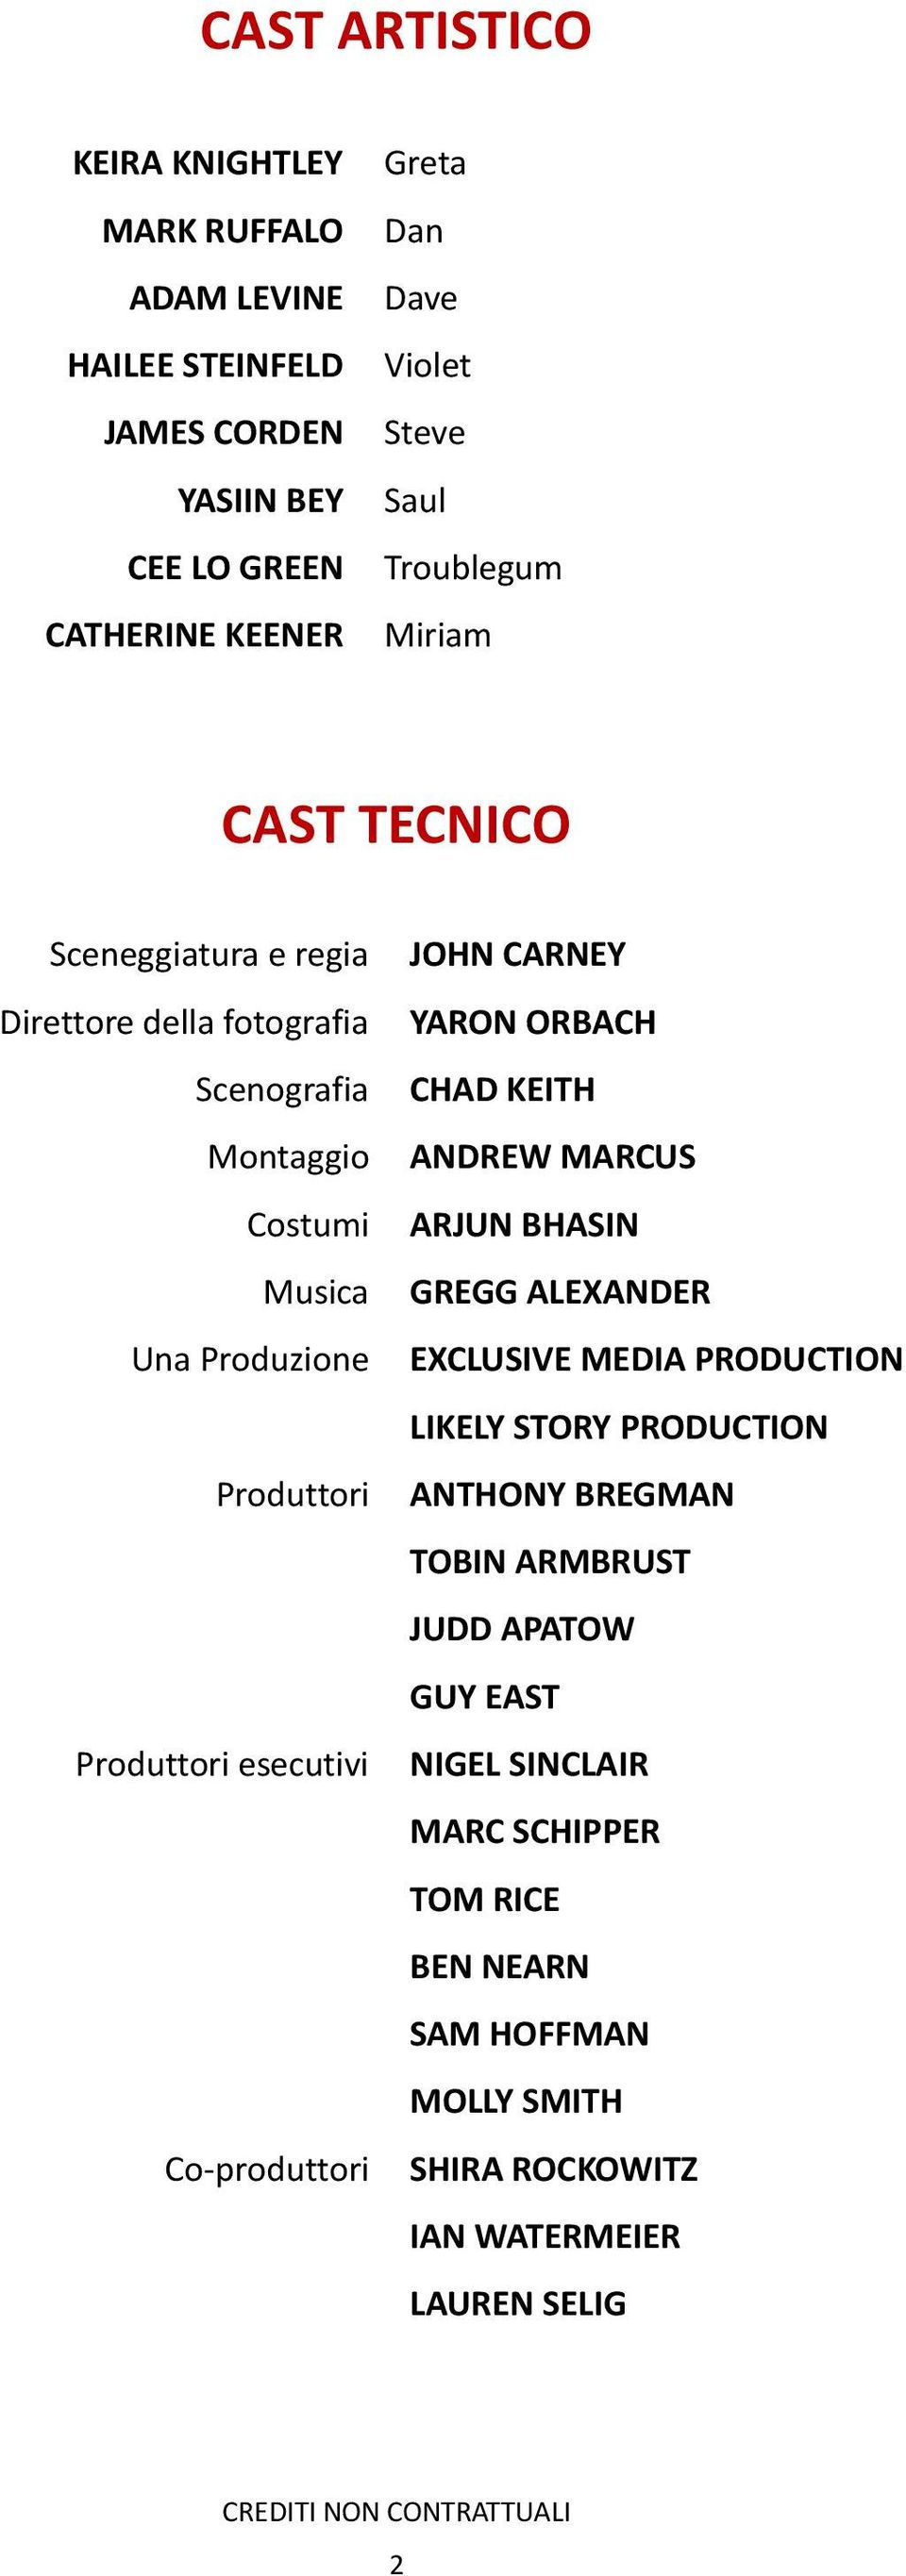 BHASIN Musica GREGG ALEXANDER Una Produzione EXCLUSIVE MEDIA PRODUCTION LIKELY STORY PRODUCTION Produttori ANTHONY BREGMAN TOBIN ARMBRUST JUDD APATOW GUY EAST